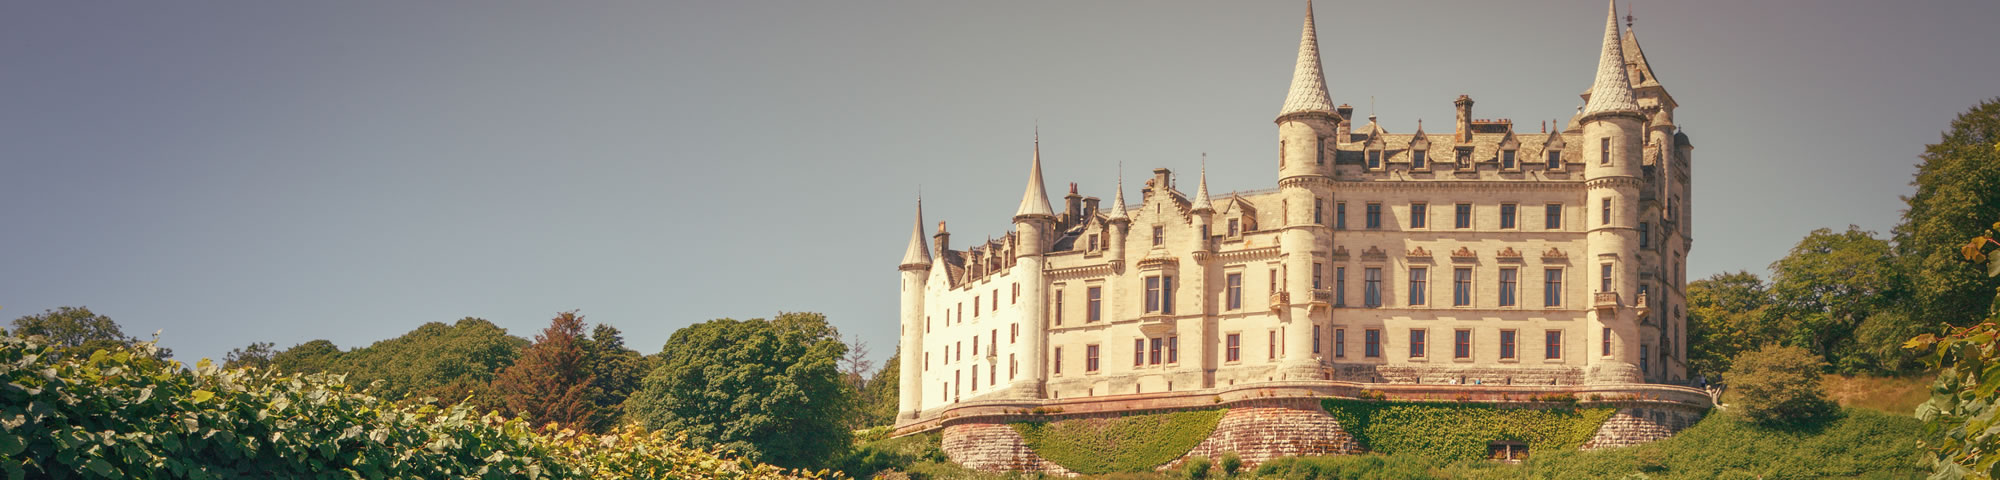 Dunrobin castle, northern Highlands